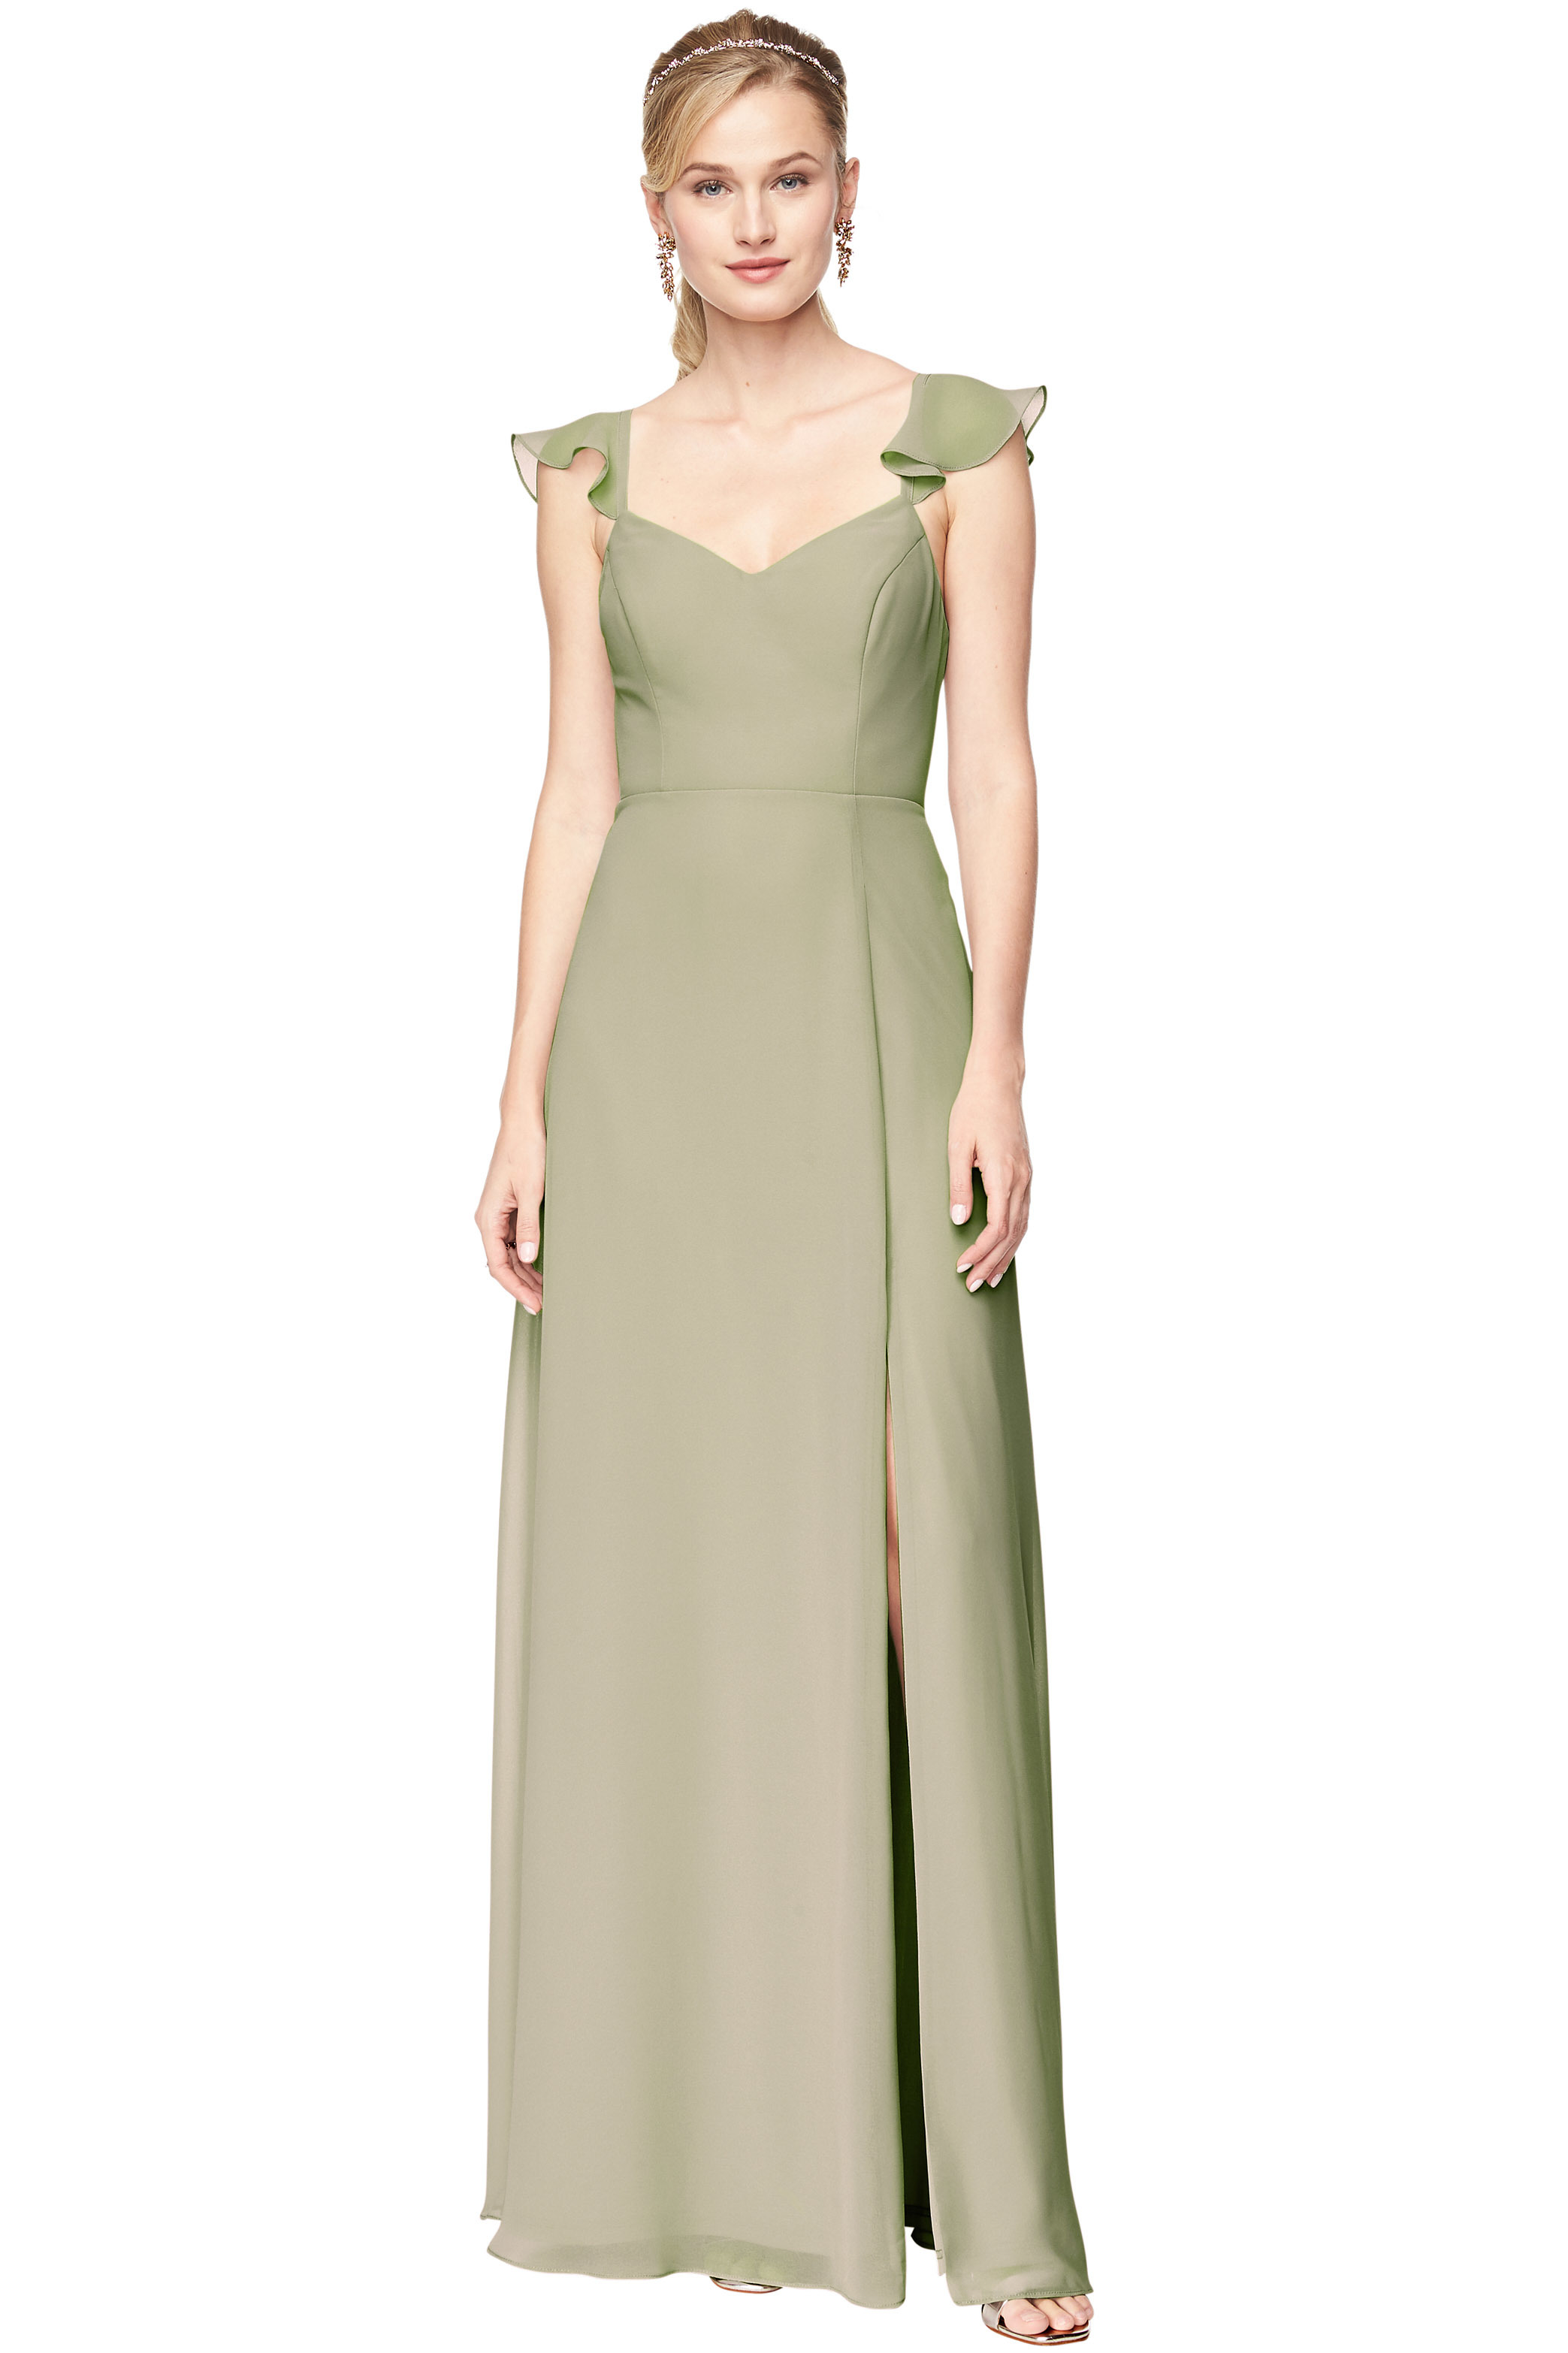 Bill Levkoff PISTACHIO Chiffon V-Neck A-line gown, $198.00 Front